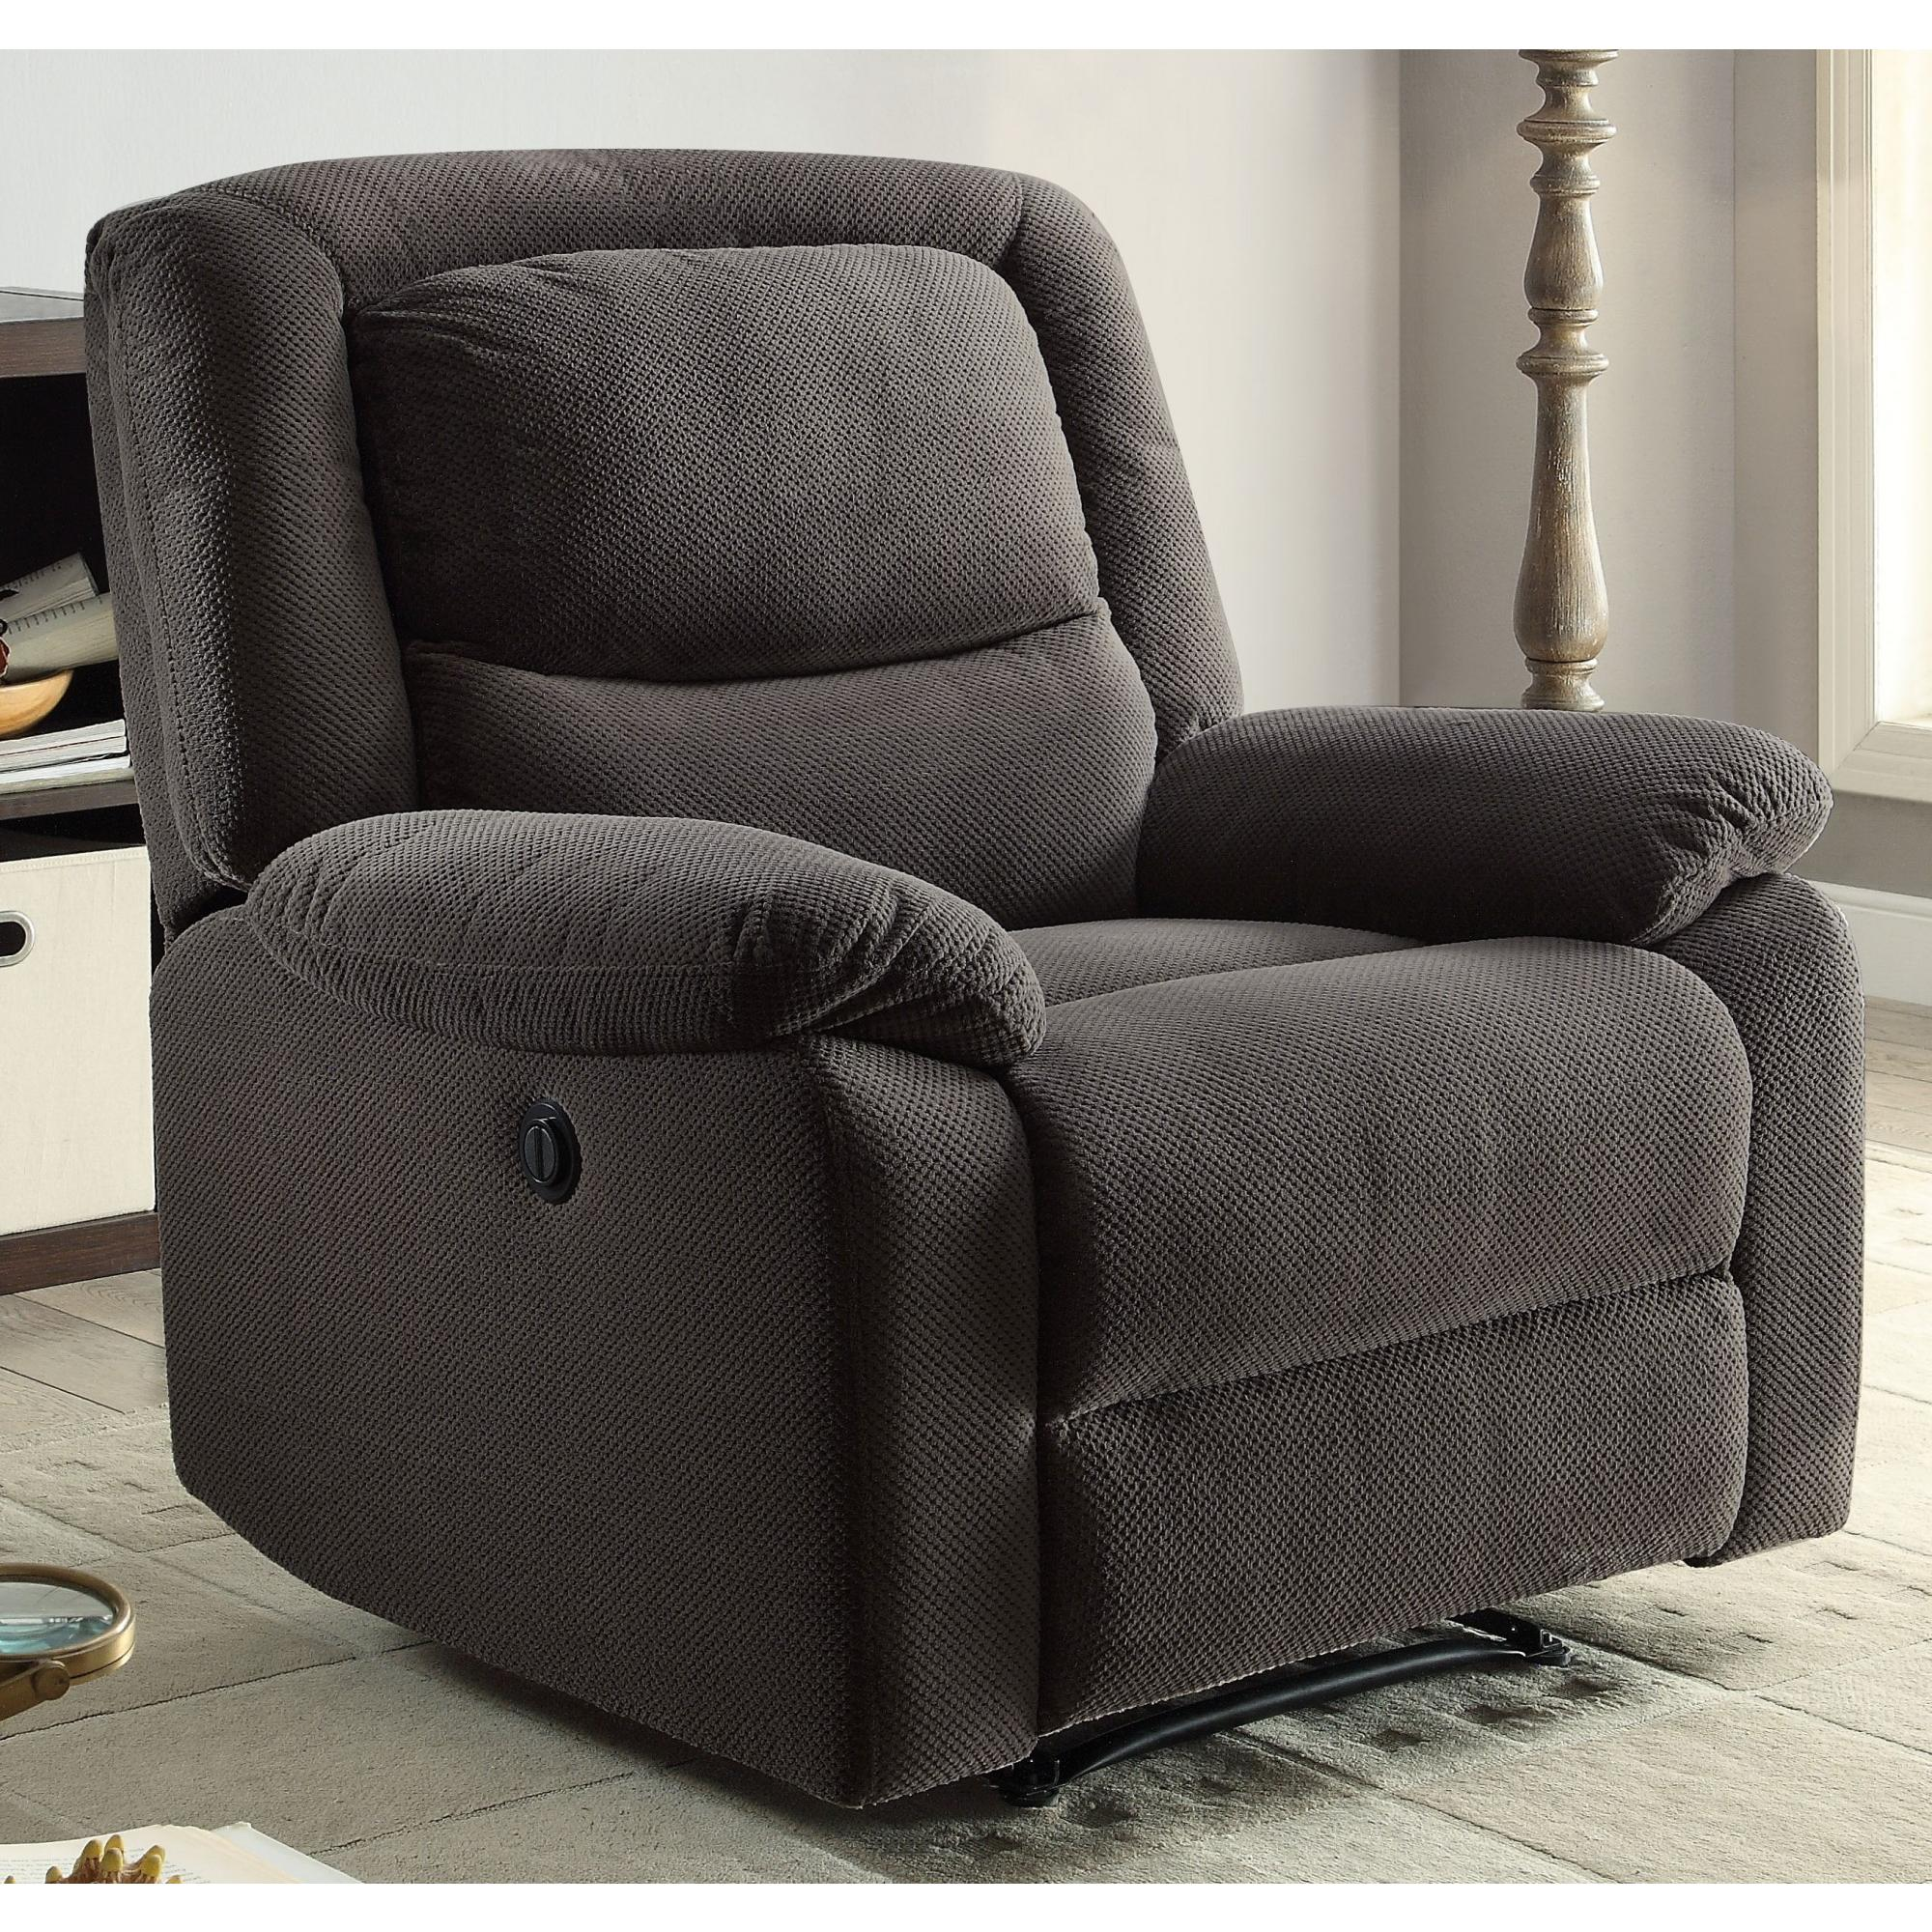 Serta Push-Button Power Recliner with Deep Body Cushions, Ultra Comfortable  Reclining Chair, Multiple Colors - Traveller Location